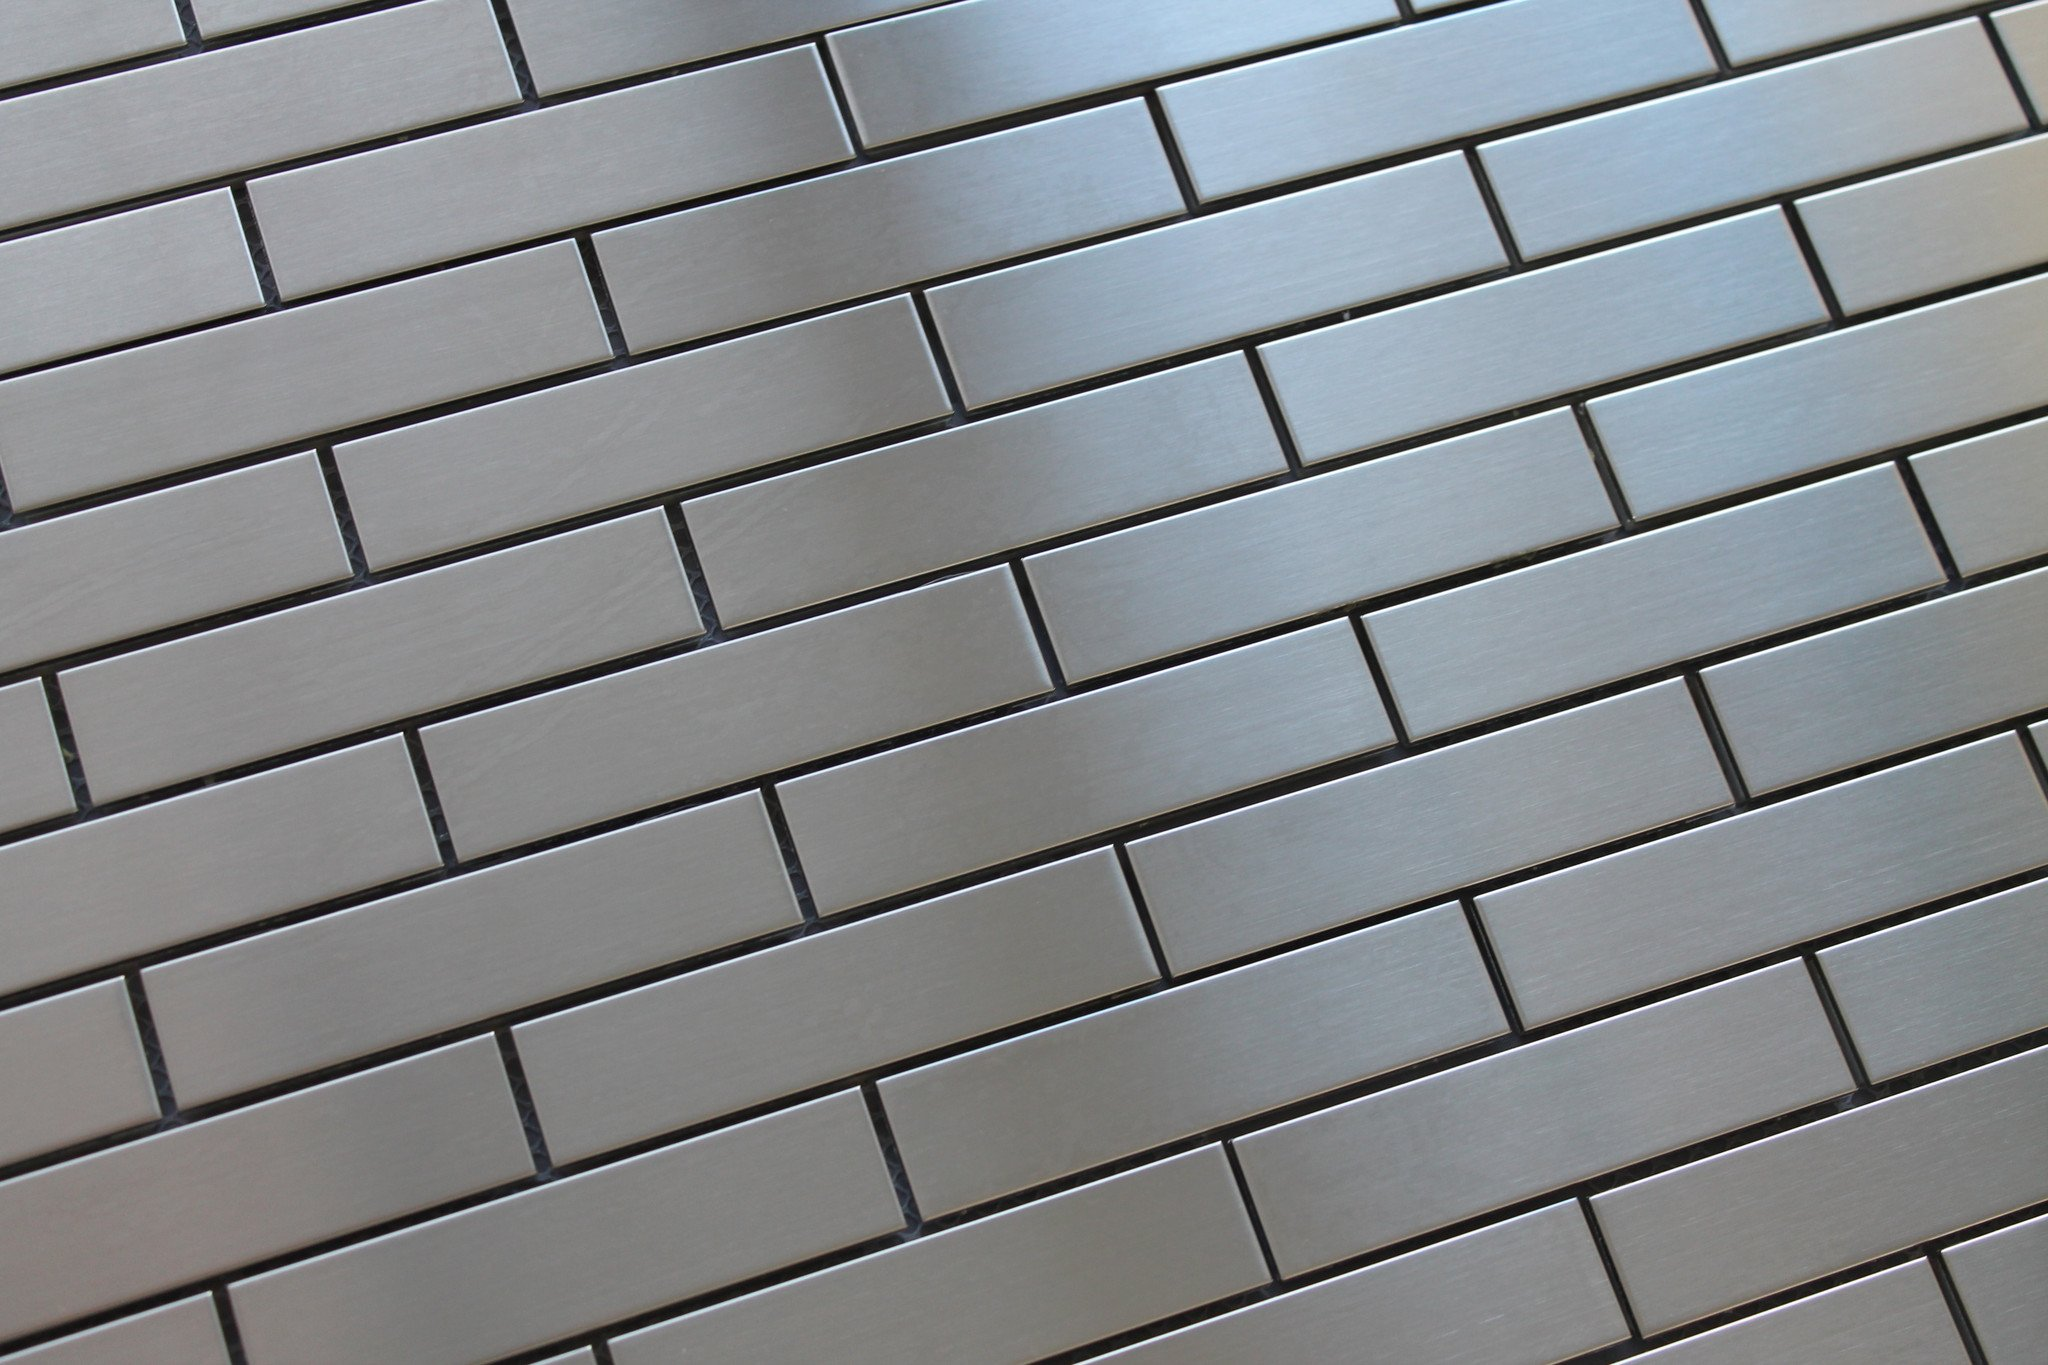 10 Square Feet - Stainless Steel 1x4 Brick Mosaic Tiles